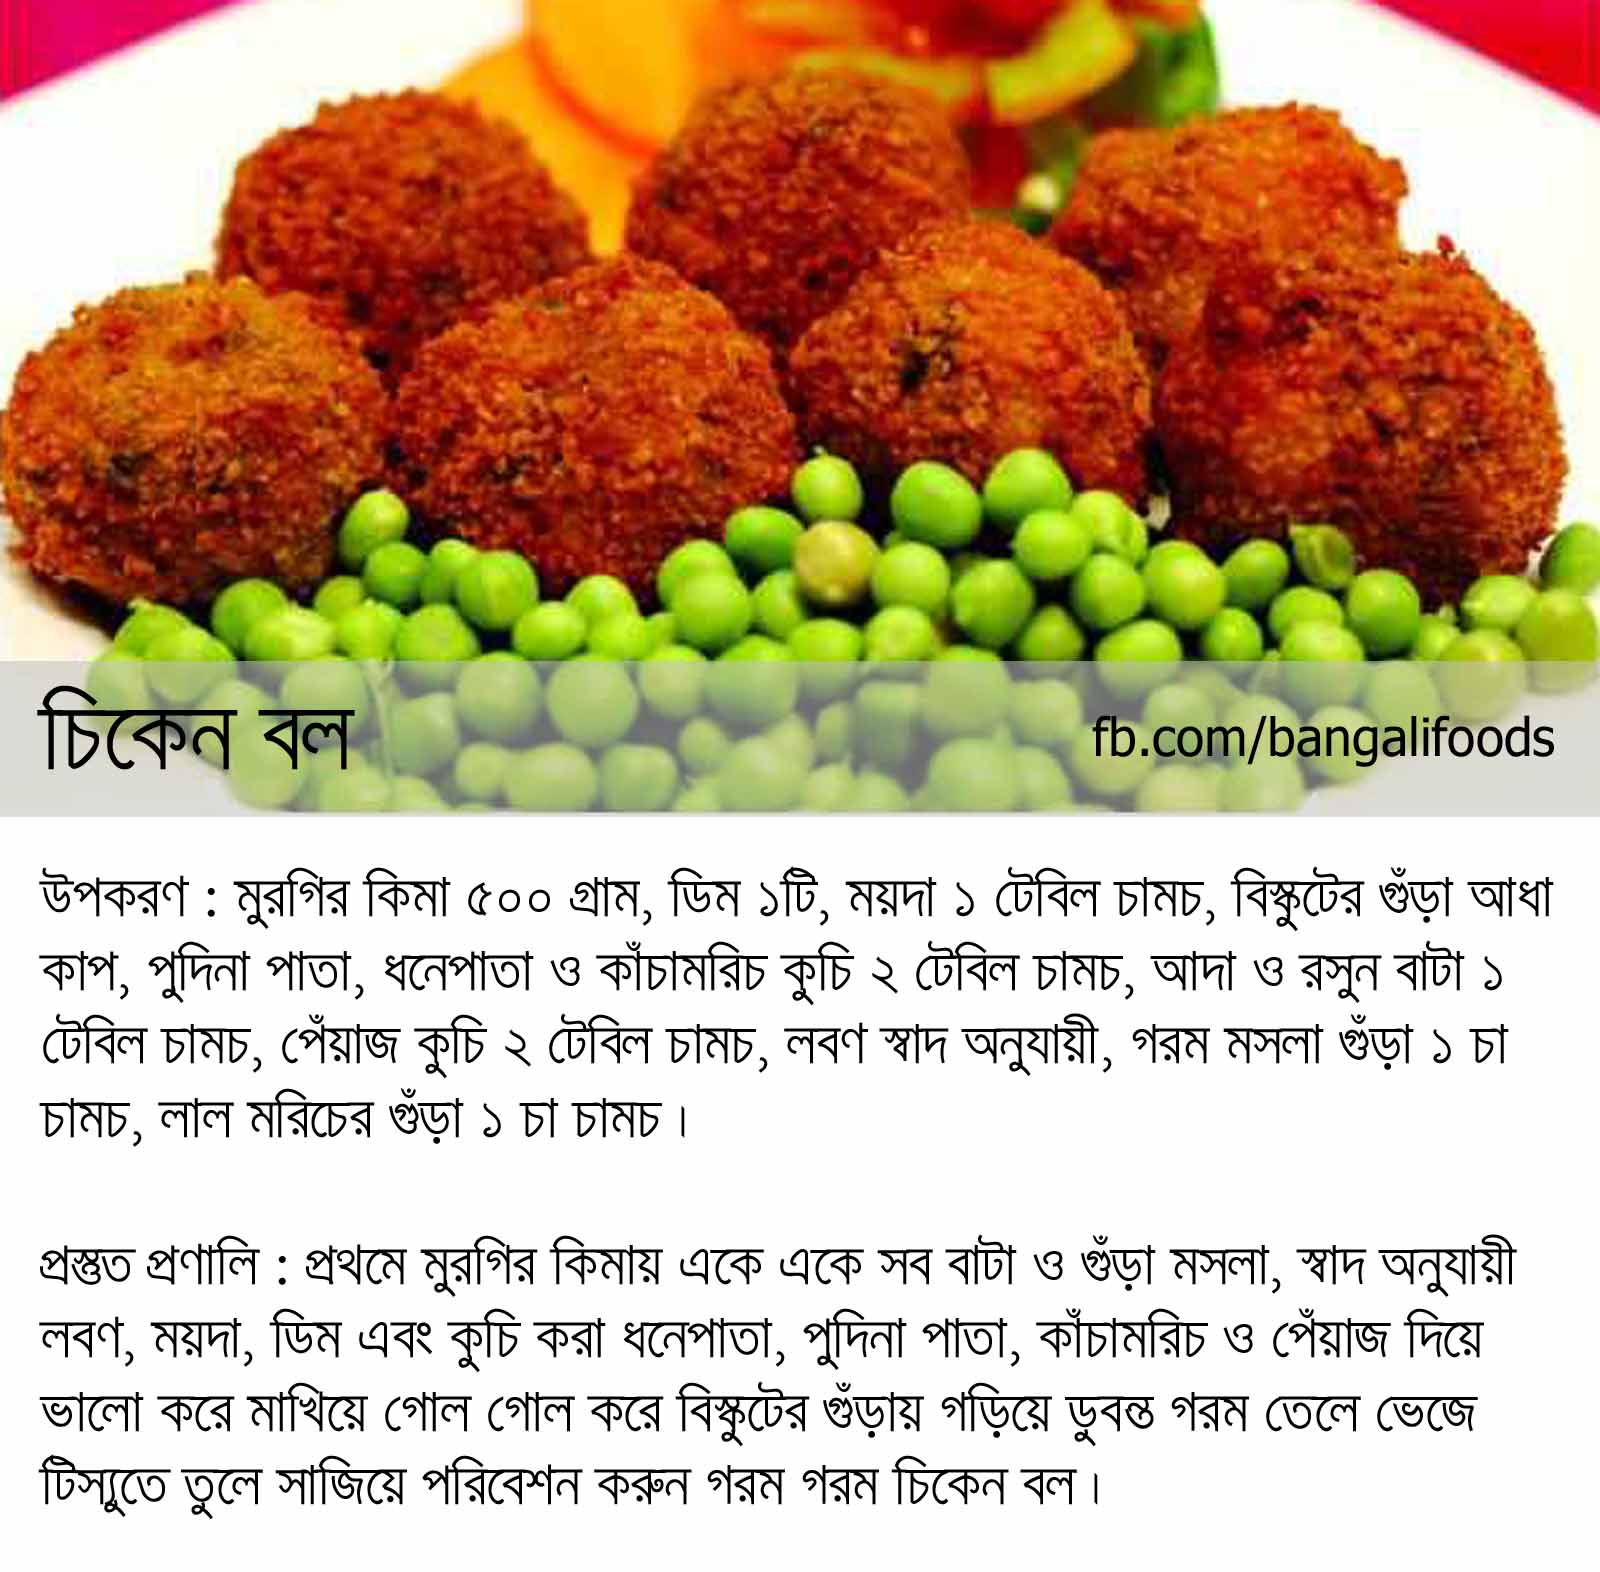 Chicken recipes in bengali language recipe chicken recipes in bengali language 4 forumfinder Images